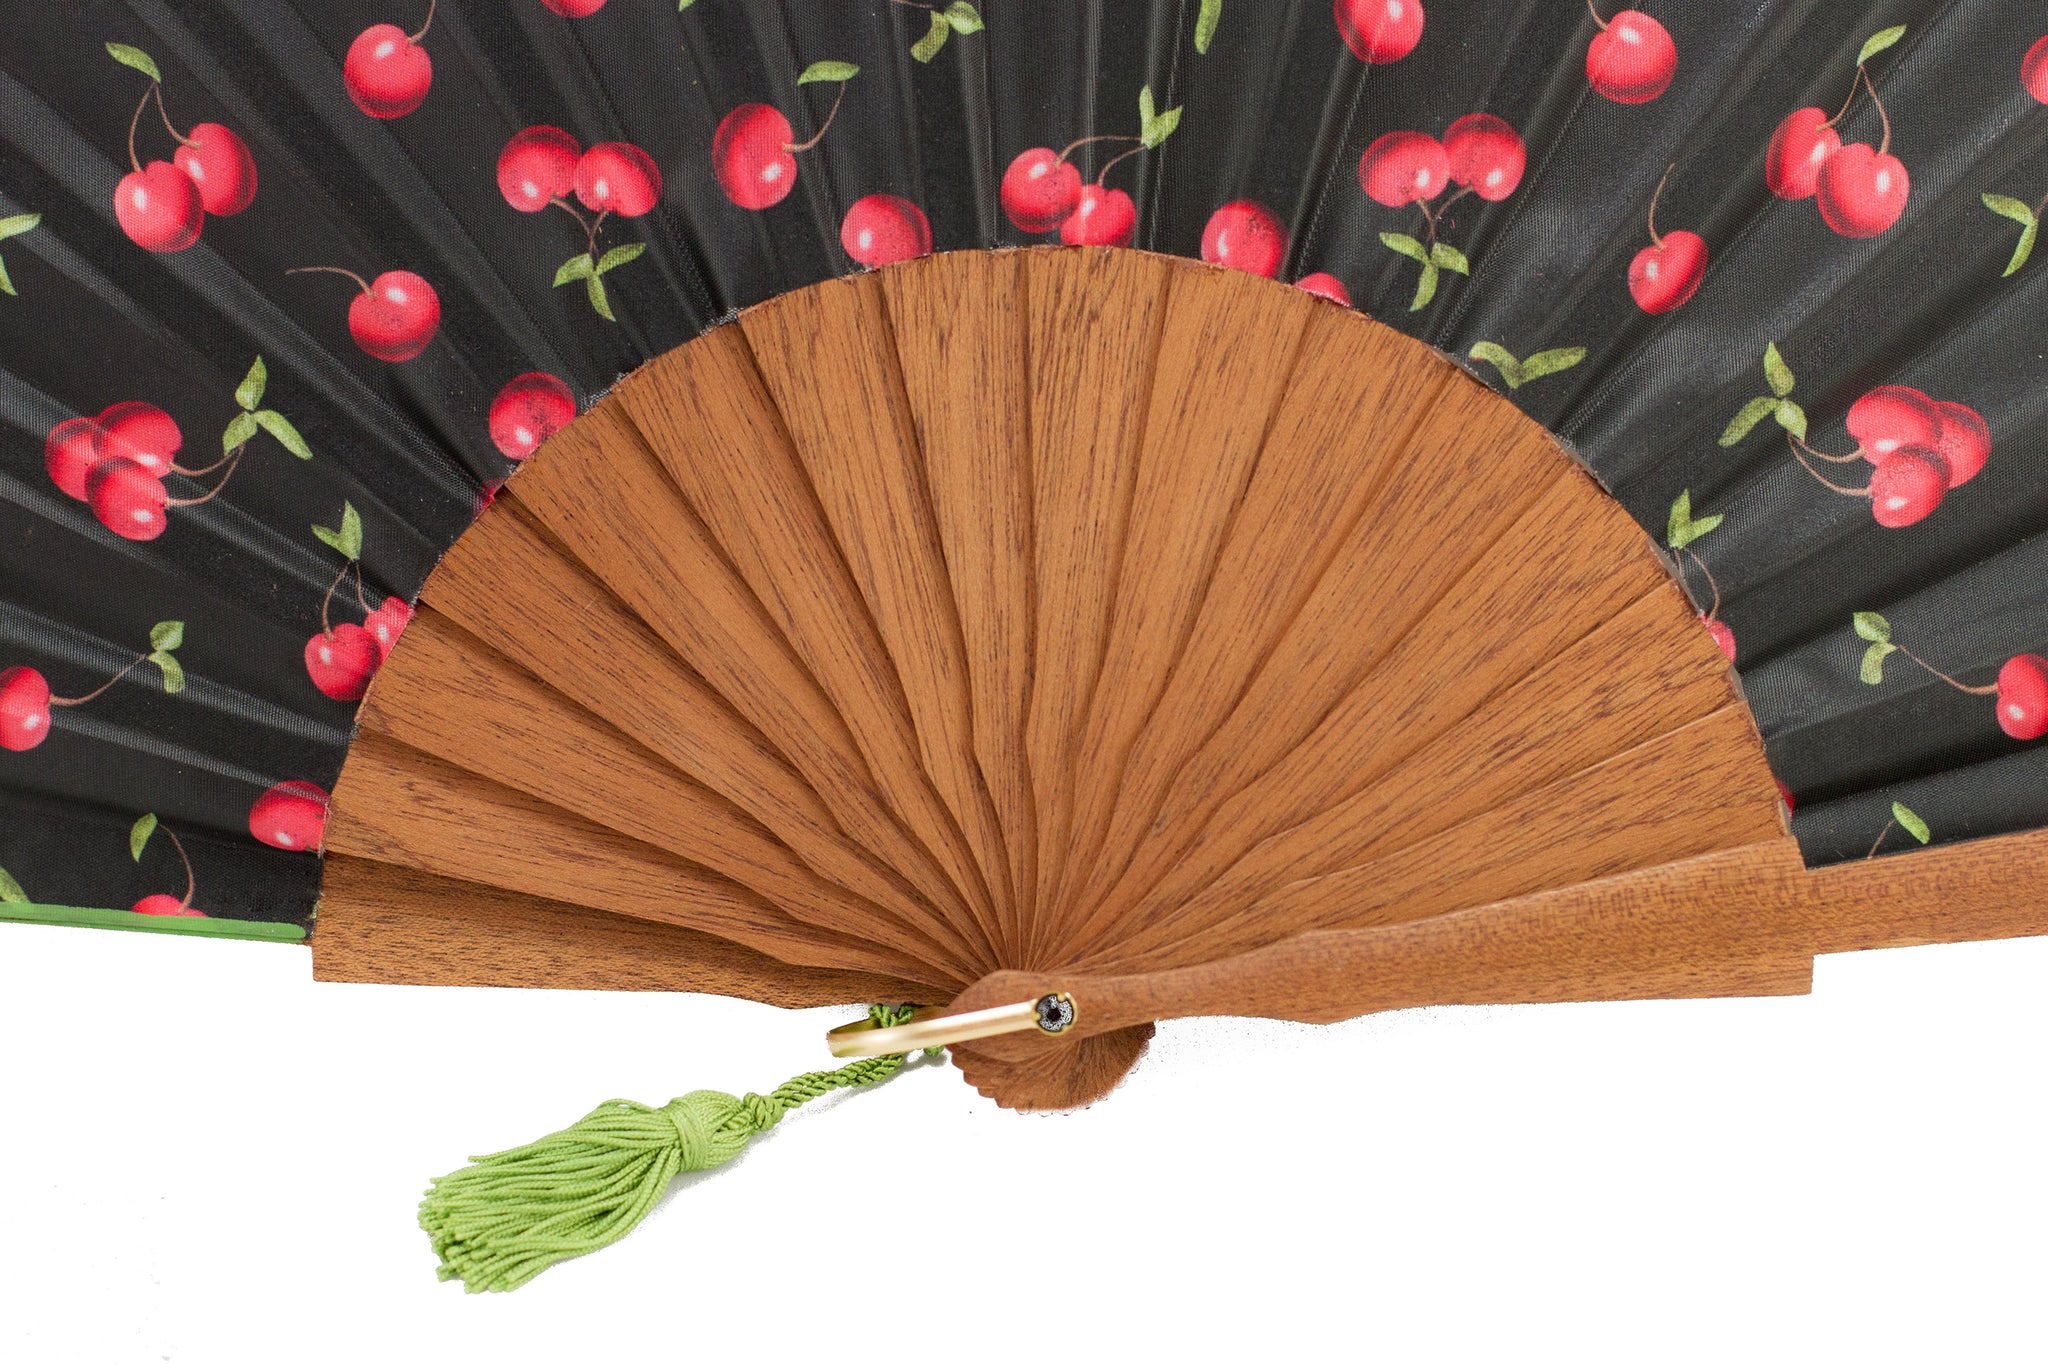 Morello - Striking contemporary cherries design handmade silk fan detail